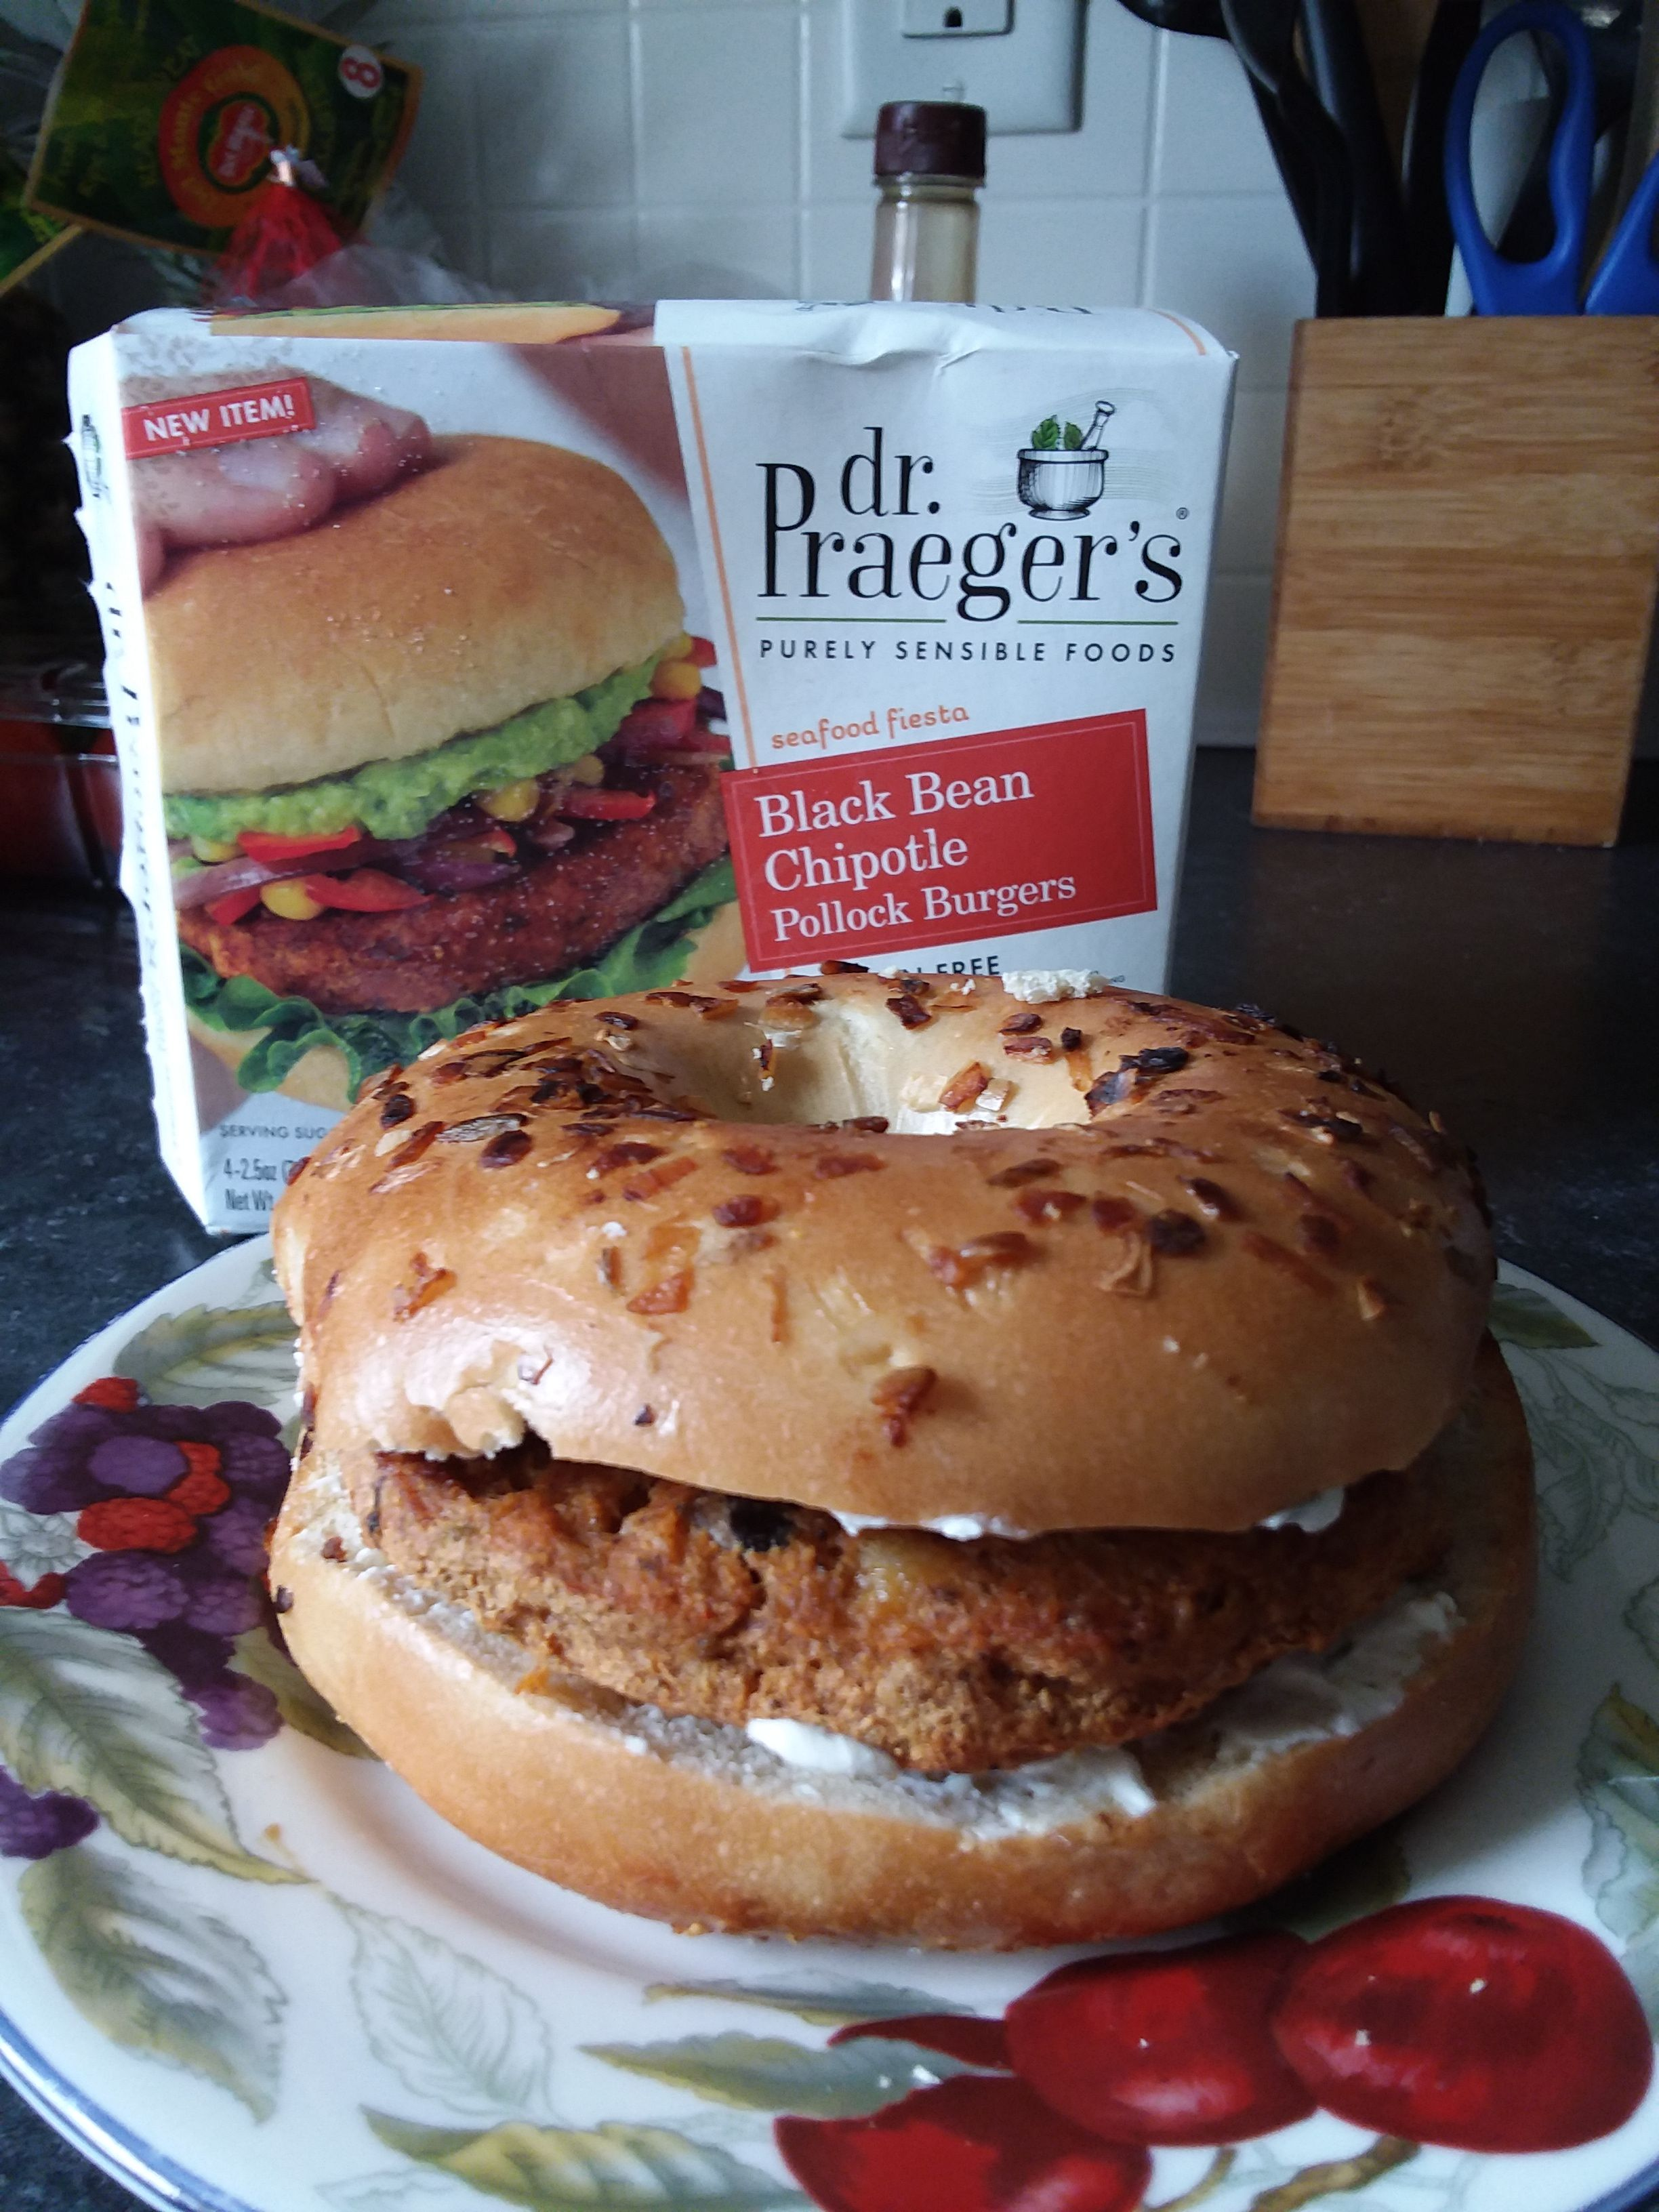 Received my coupon for a free Dr Praeger's product and decided to try the Dr Praeger s Black Bean Chipotle Pollock Burgers The burger patty itself was not too bad it was pretty tasty However I had a stack of fresh onion bagels and just had to try it on one I would not re mend that method A plan bun would have been much better but for my mission this is how I tried it Thank you Kroger for this opportunity